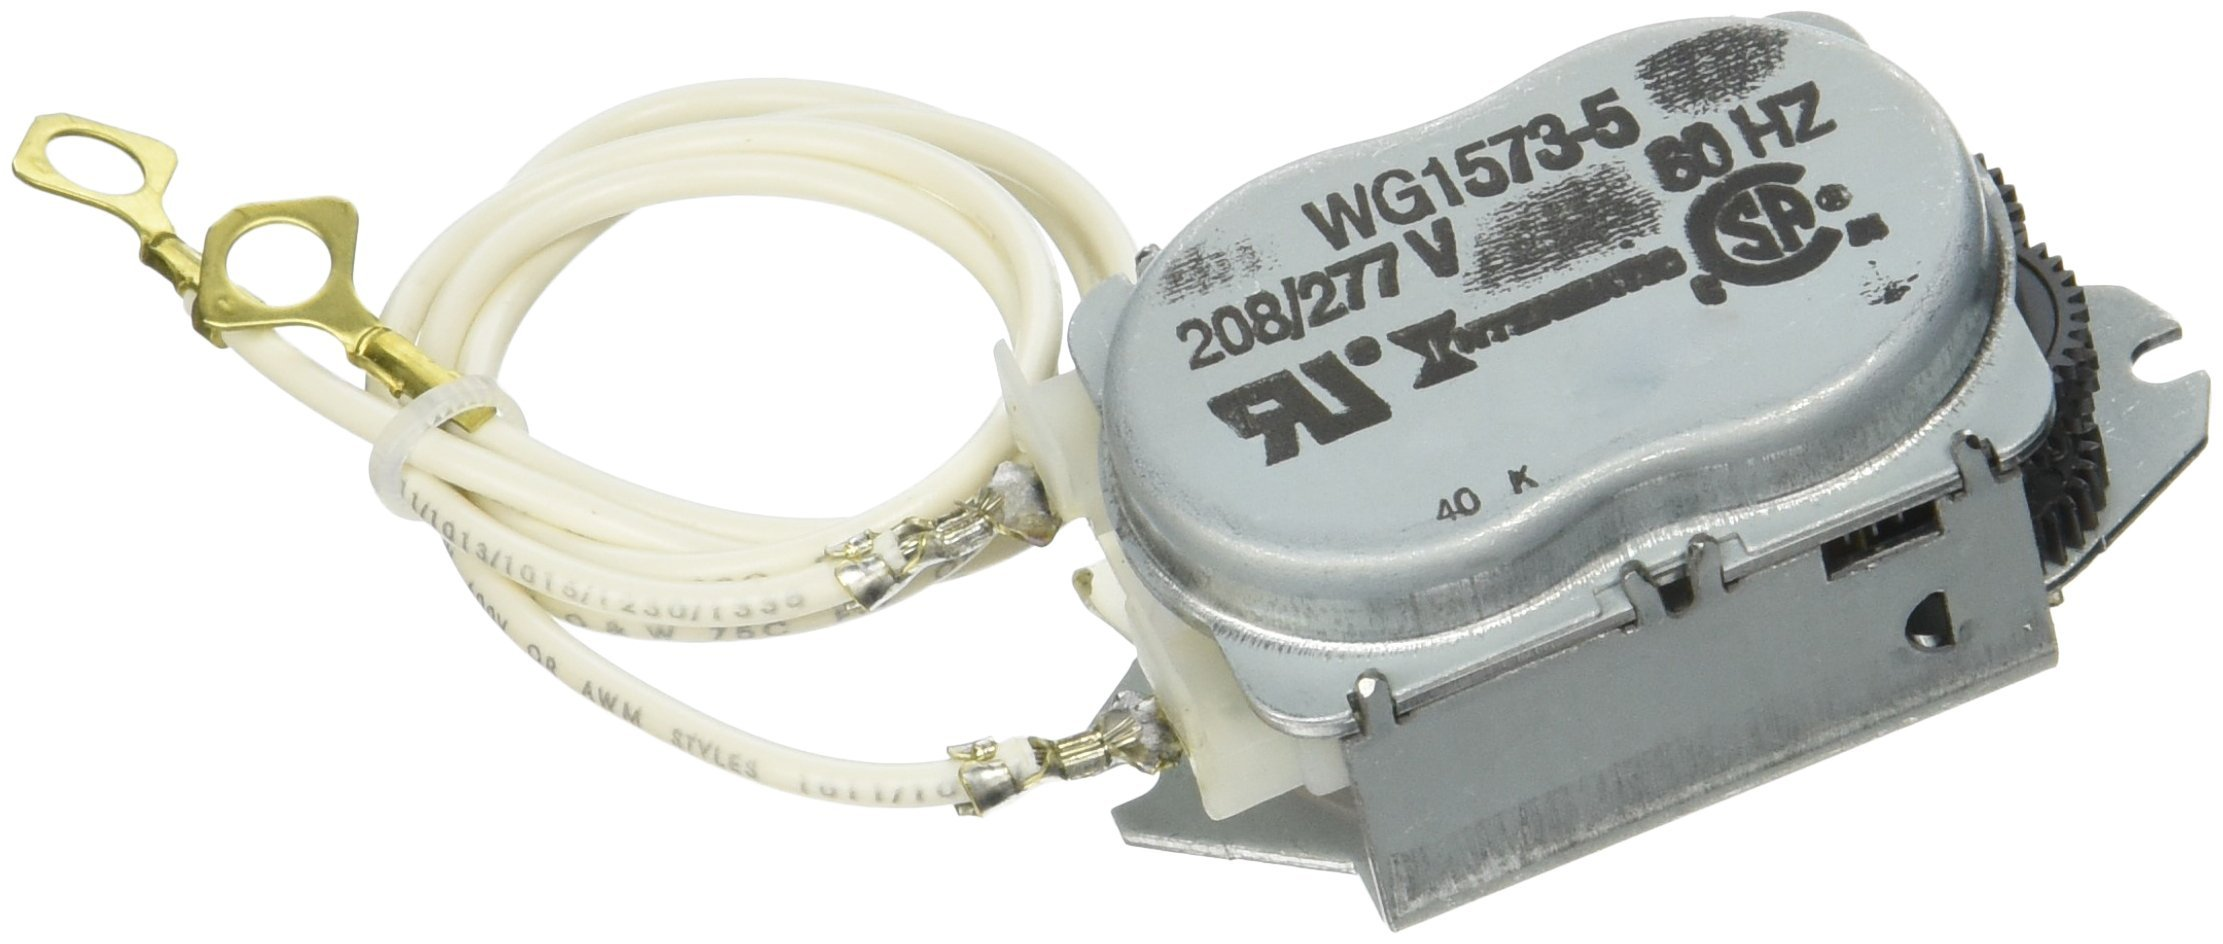 Intermatic WG1573-10D 60-Hertz Replacement Clock Motor for T100, T170, T100R201, T1400, T100-20 and WH Series